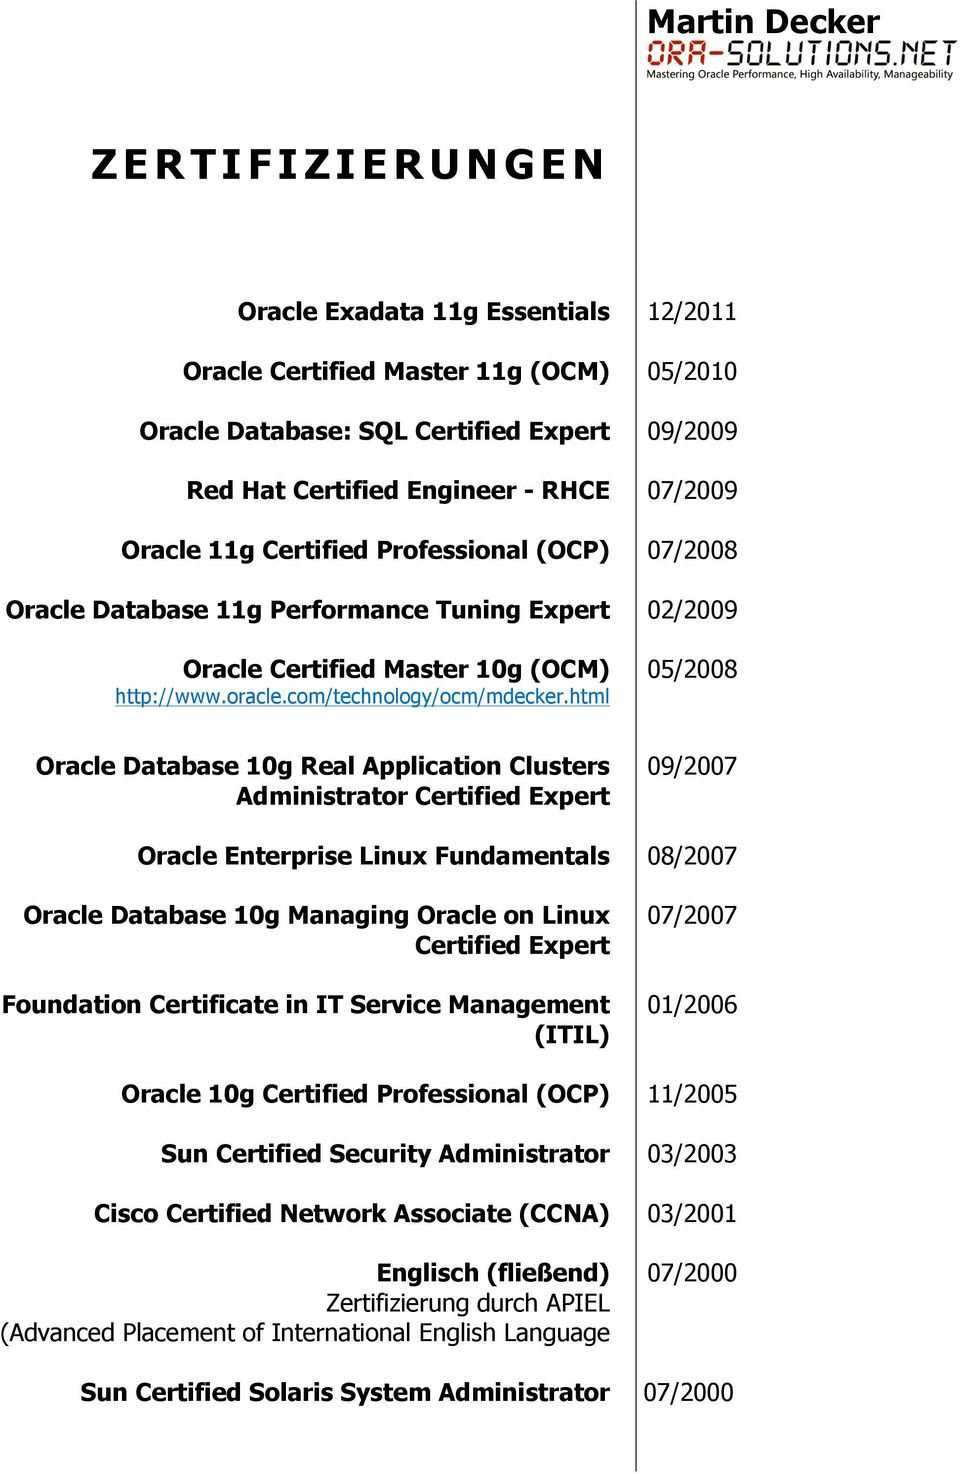 html 12/2011 05/2010 09/2009 07/2009 07/2008 02/2009 05/2008 Oracle Database 10g Real Application Clusters Administrator Certified Expert Oracle Enterprise Linux Fundamentals Oracle Database 10g